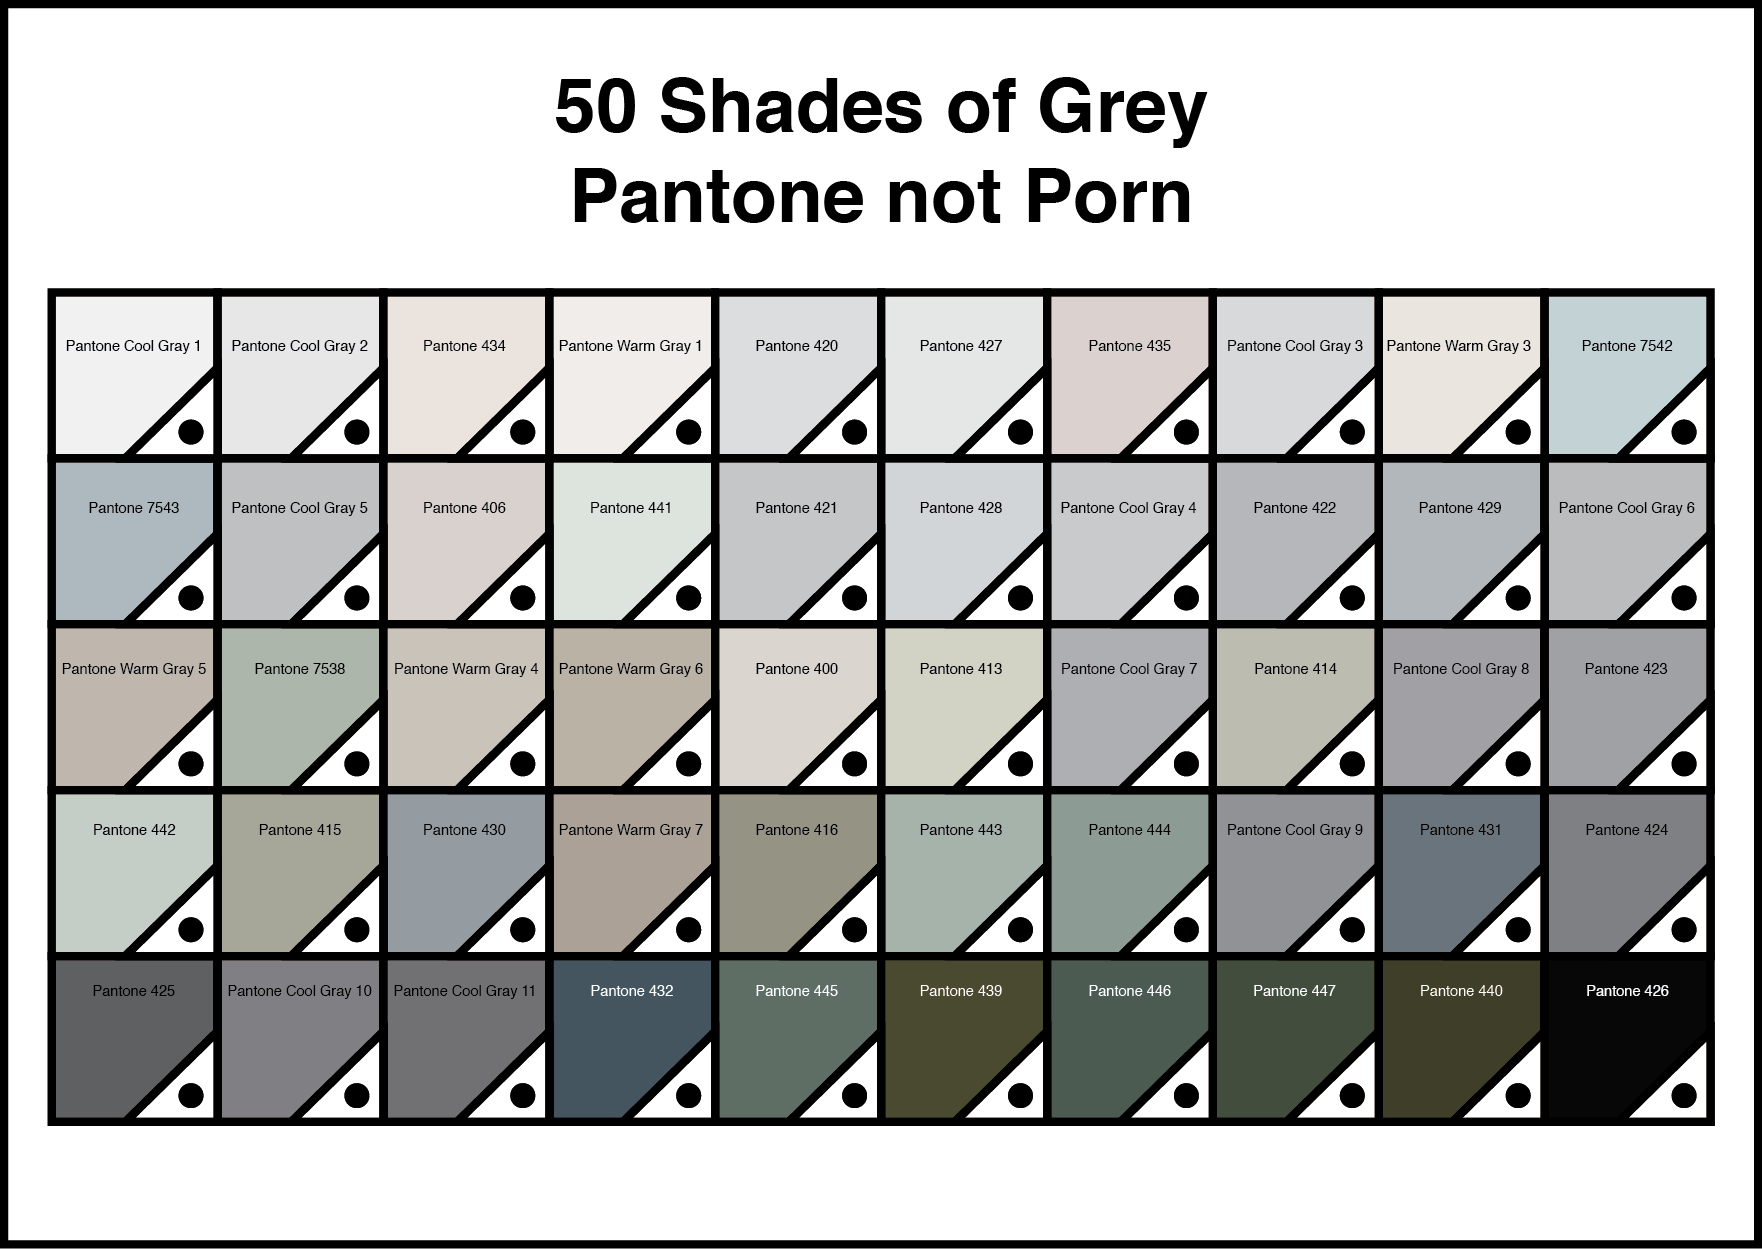 Shads Of Gray 50 Shades Of Grey Pantone Not Porn Mark Catley Design